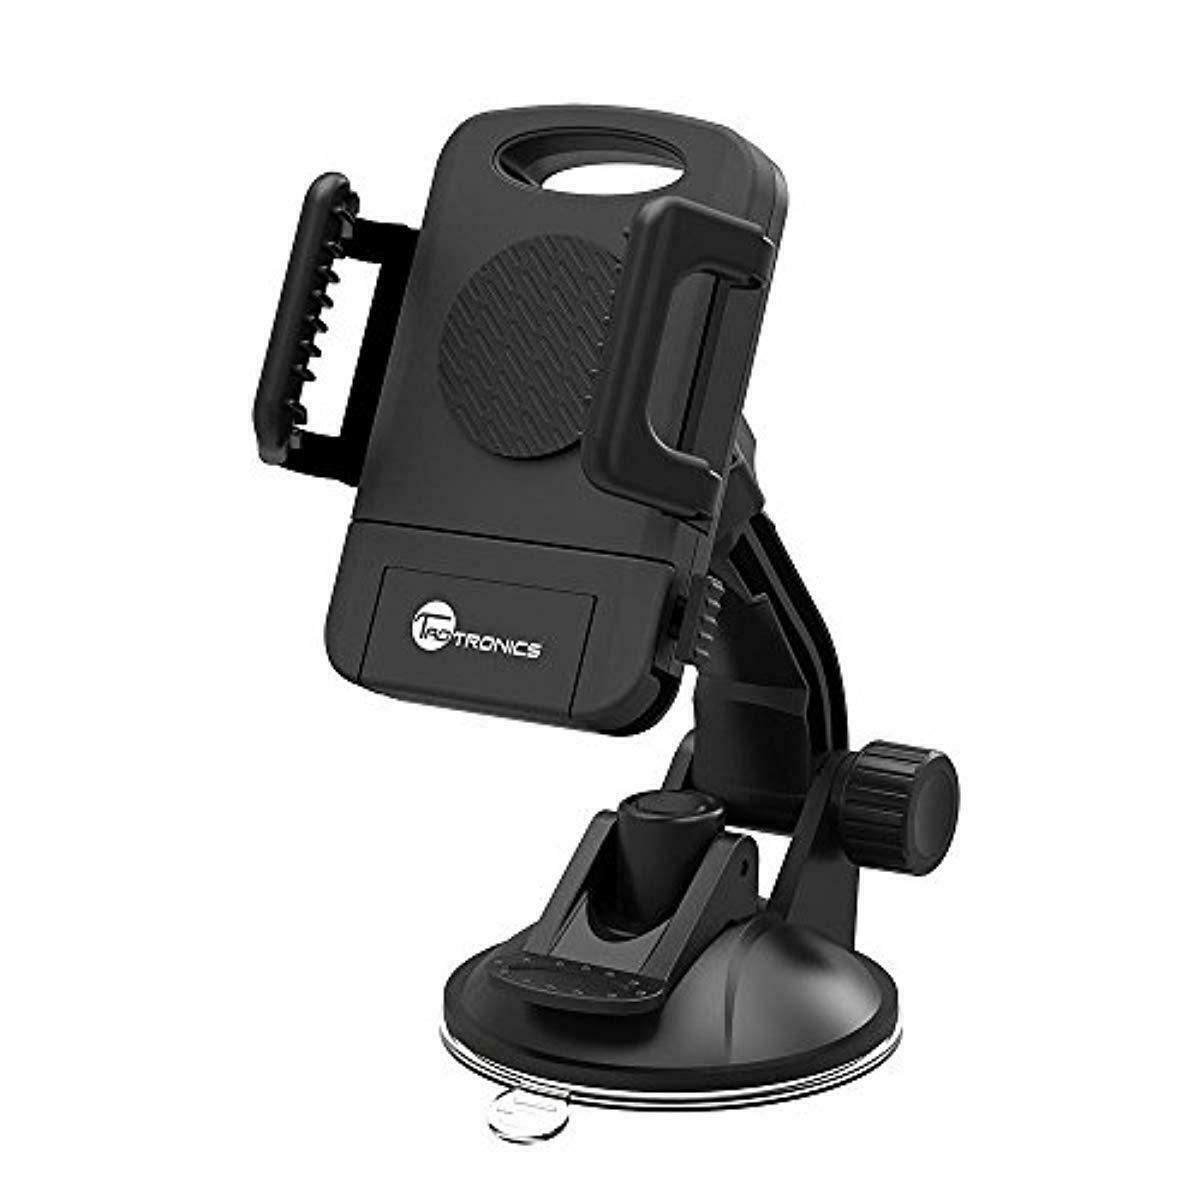 TaoTronics Car Phone Mount Holder, Windshield / Dashboard Un